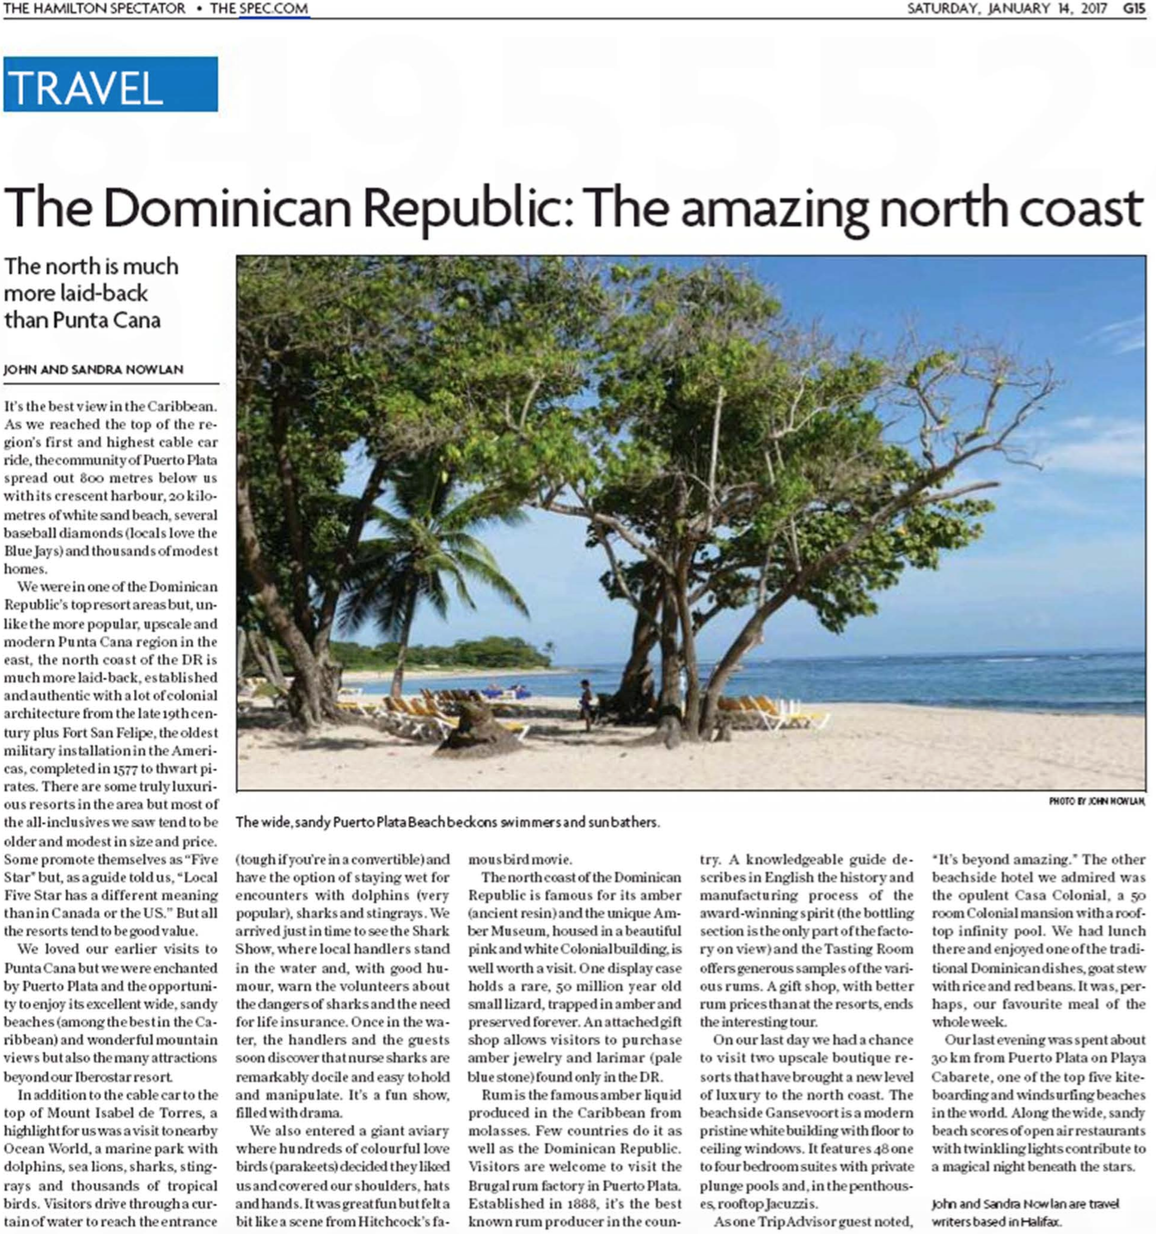 The DR: The amazing north-coast<br>HAMILTON SPECTATOR